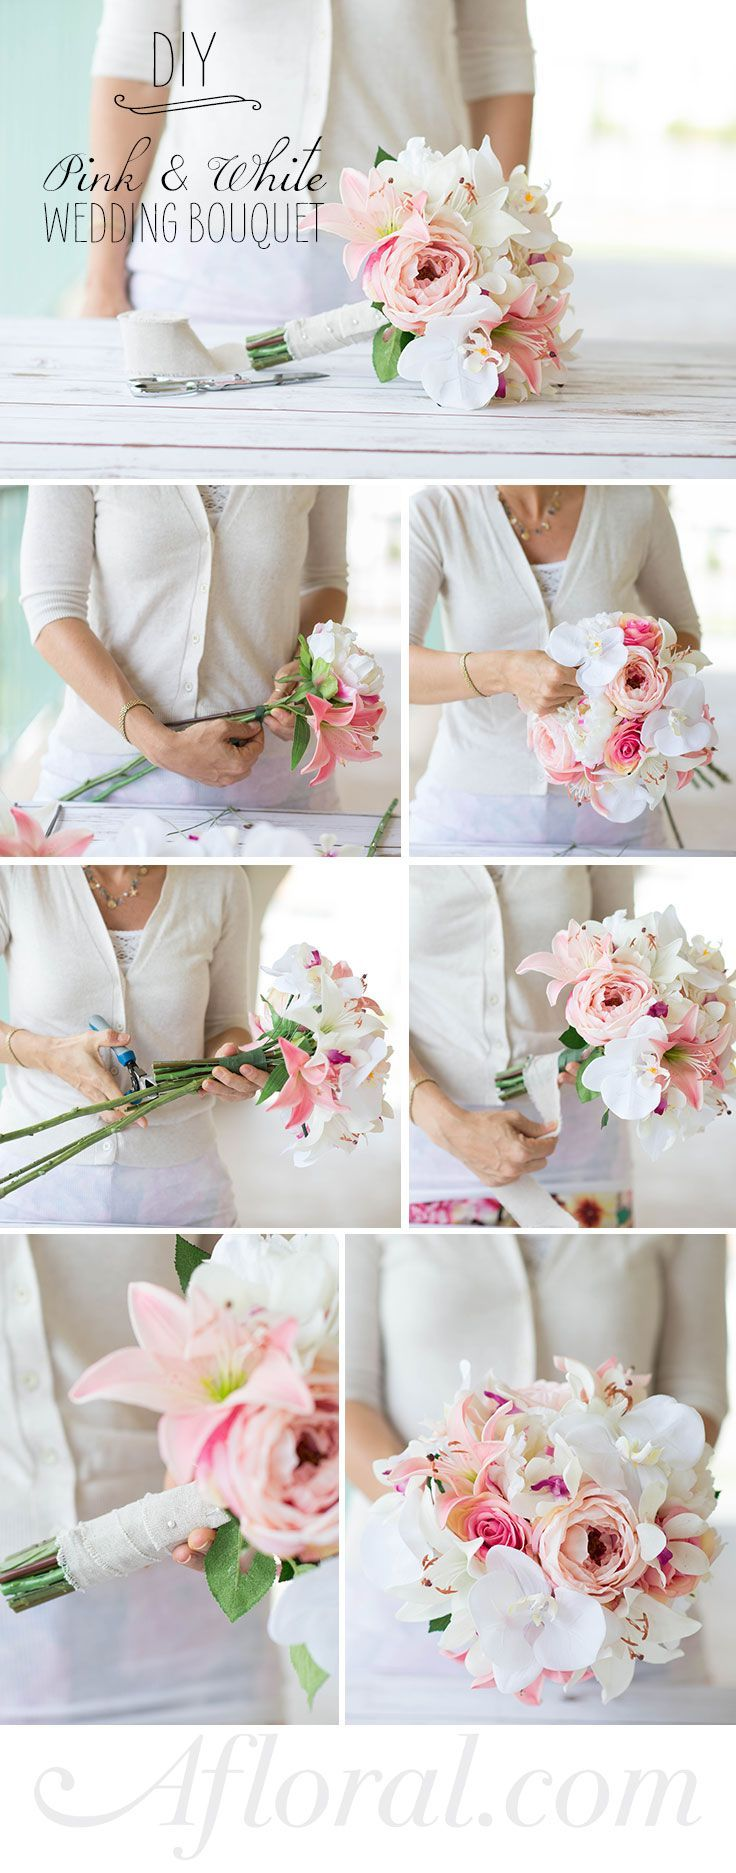 How to Assemble a Simple Silk Flower Bouquet Diy wedding